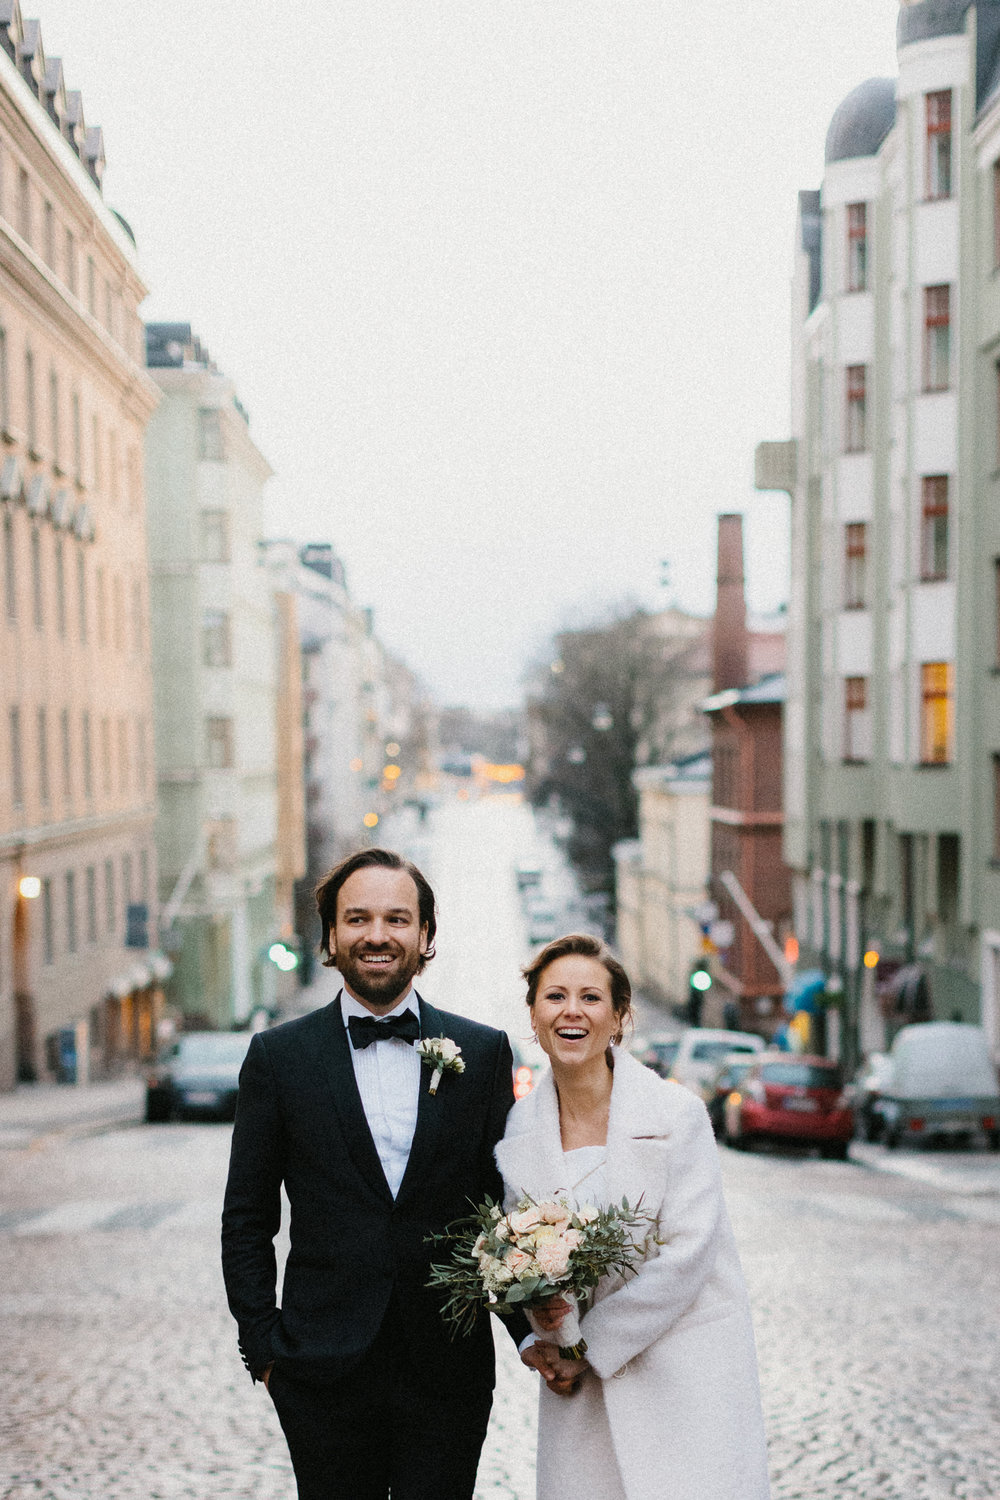 Maria + Topi | Photo by Patrick Karkkolainen Wedding Photographer | Helsinki Wedding Photographer-65.jpg